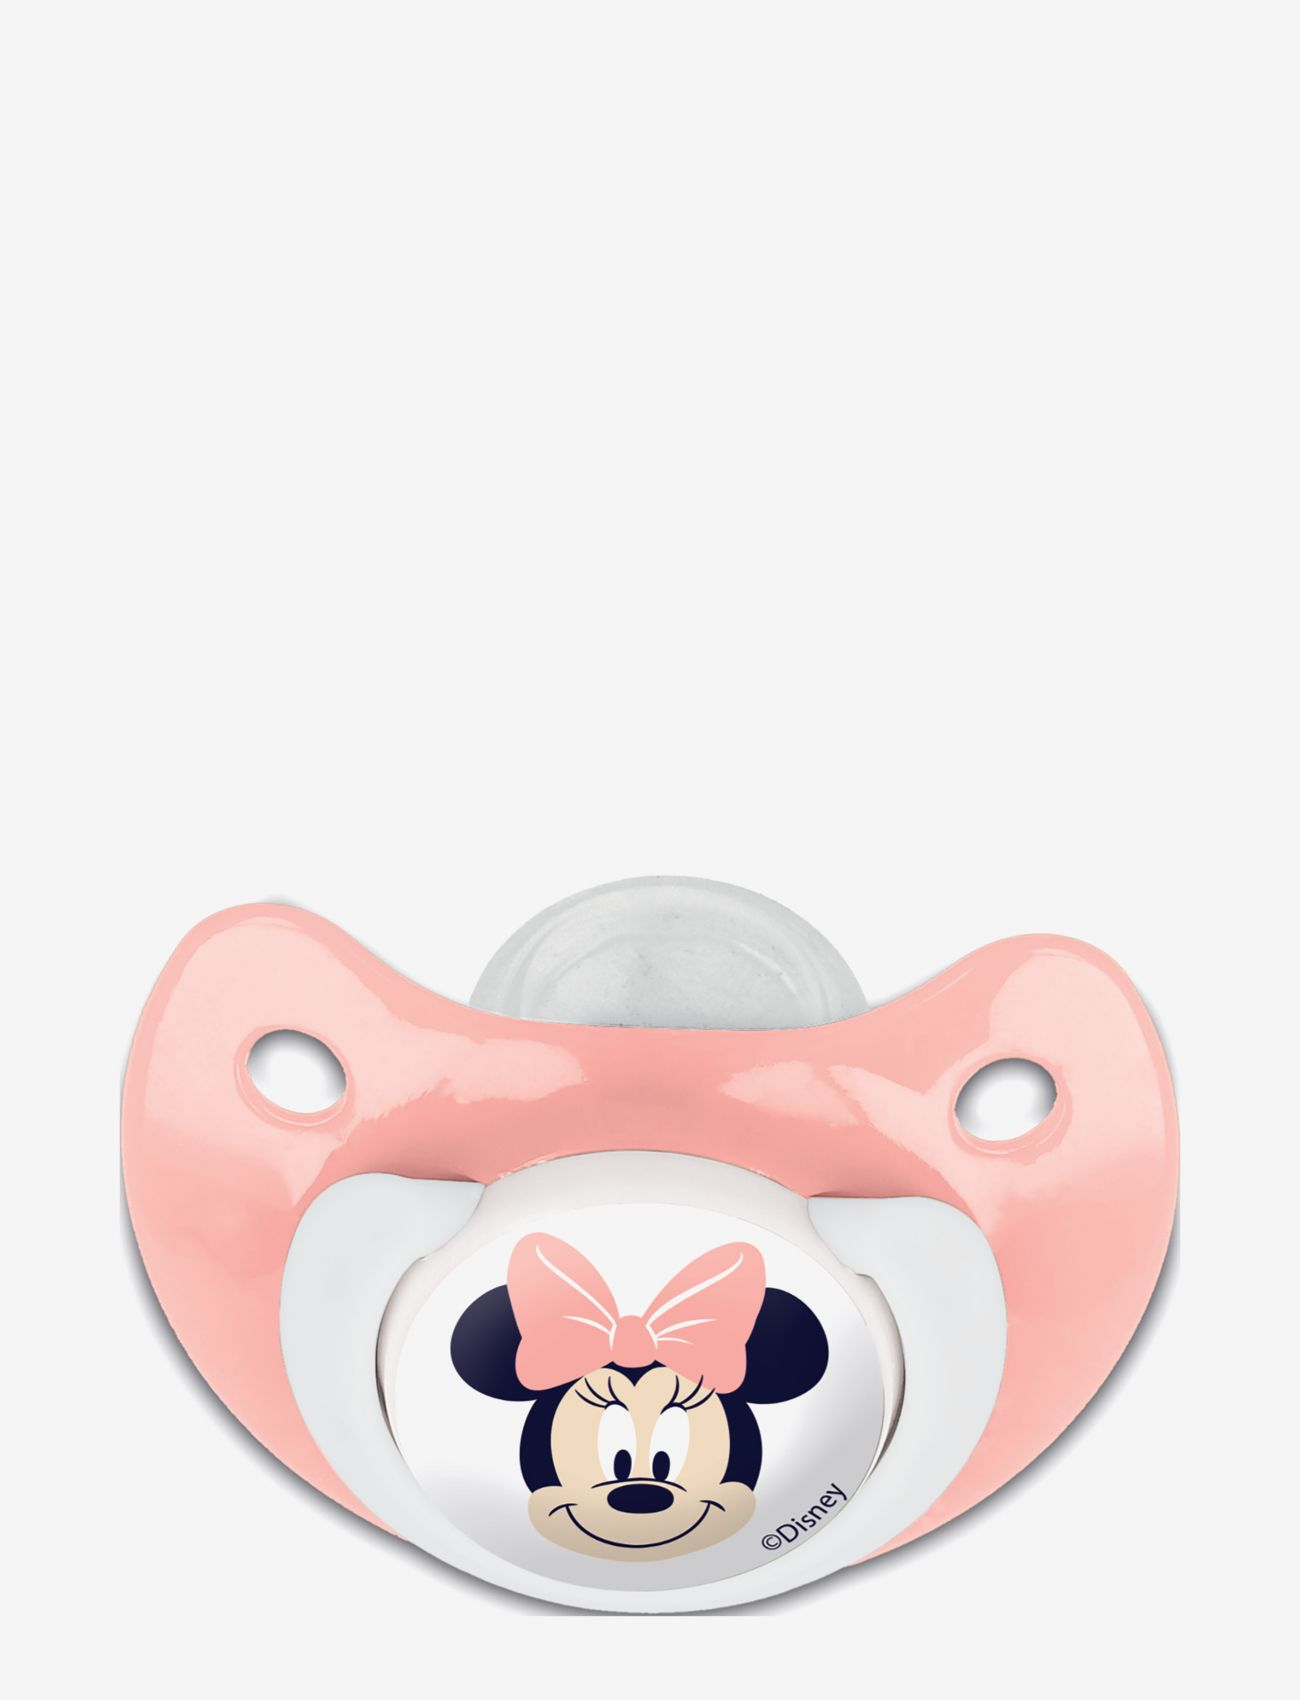 Disney Baby orthodontic pacifier silicone +6m Minnie